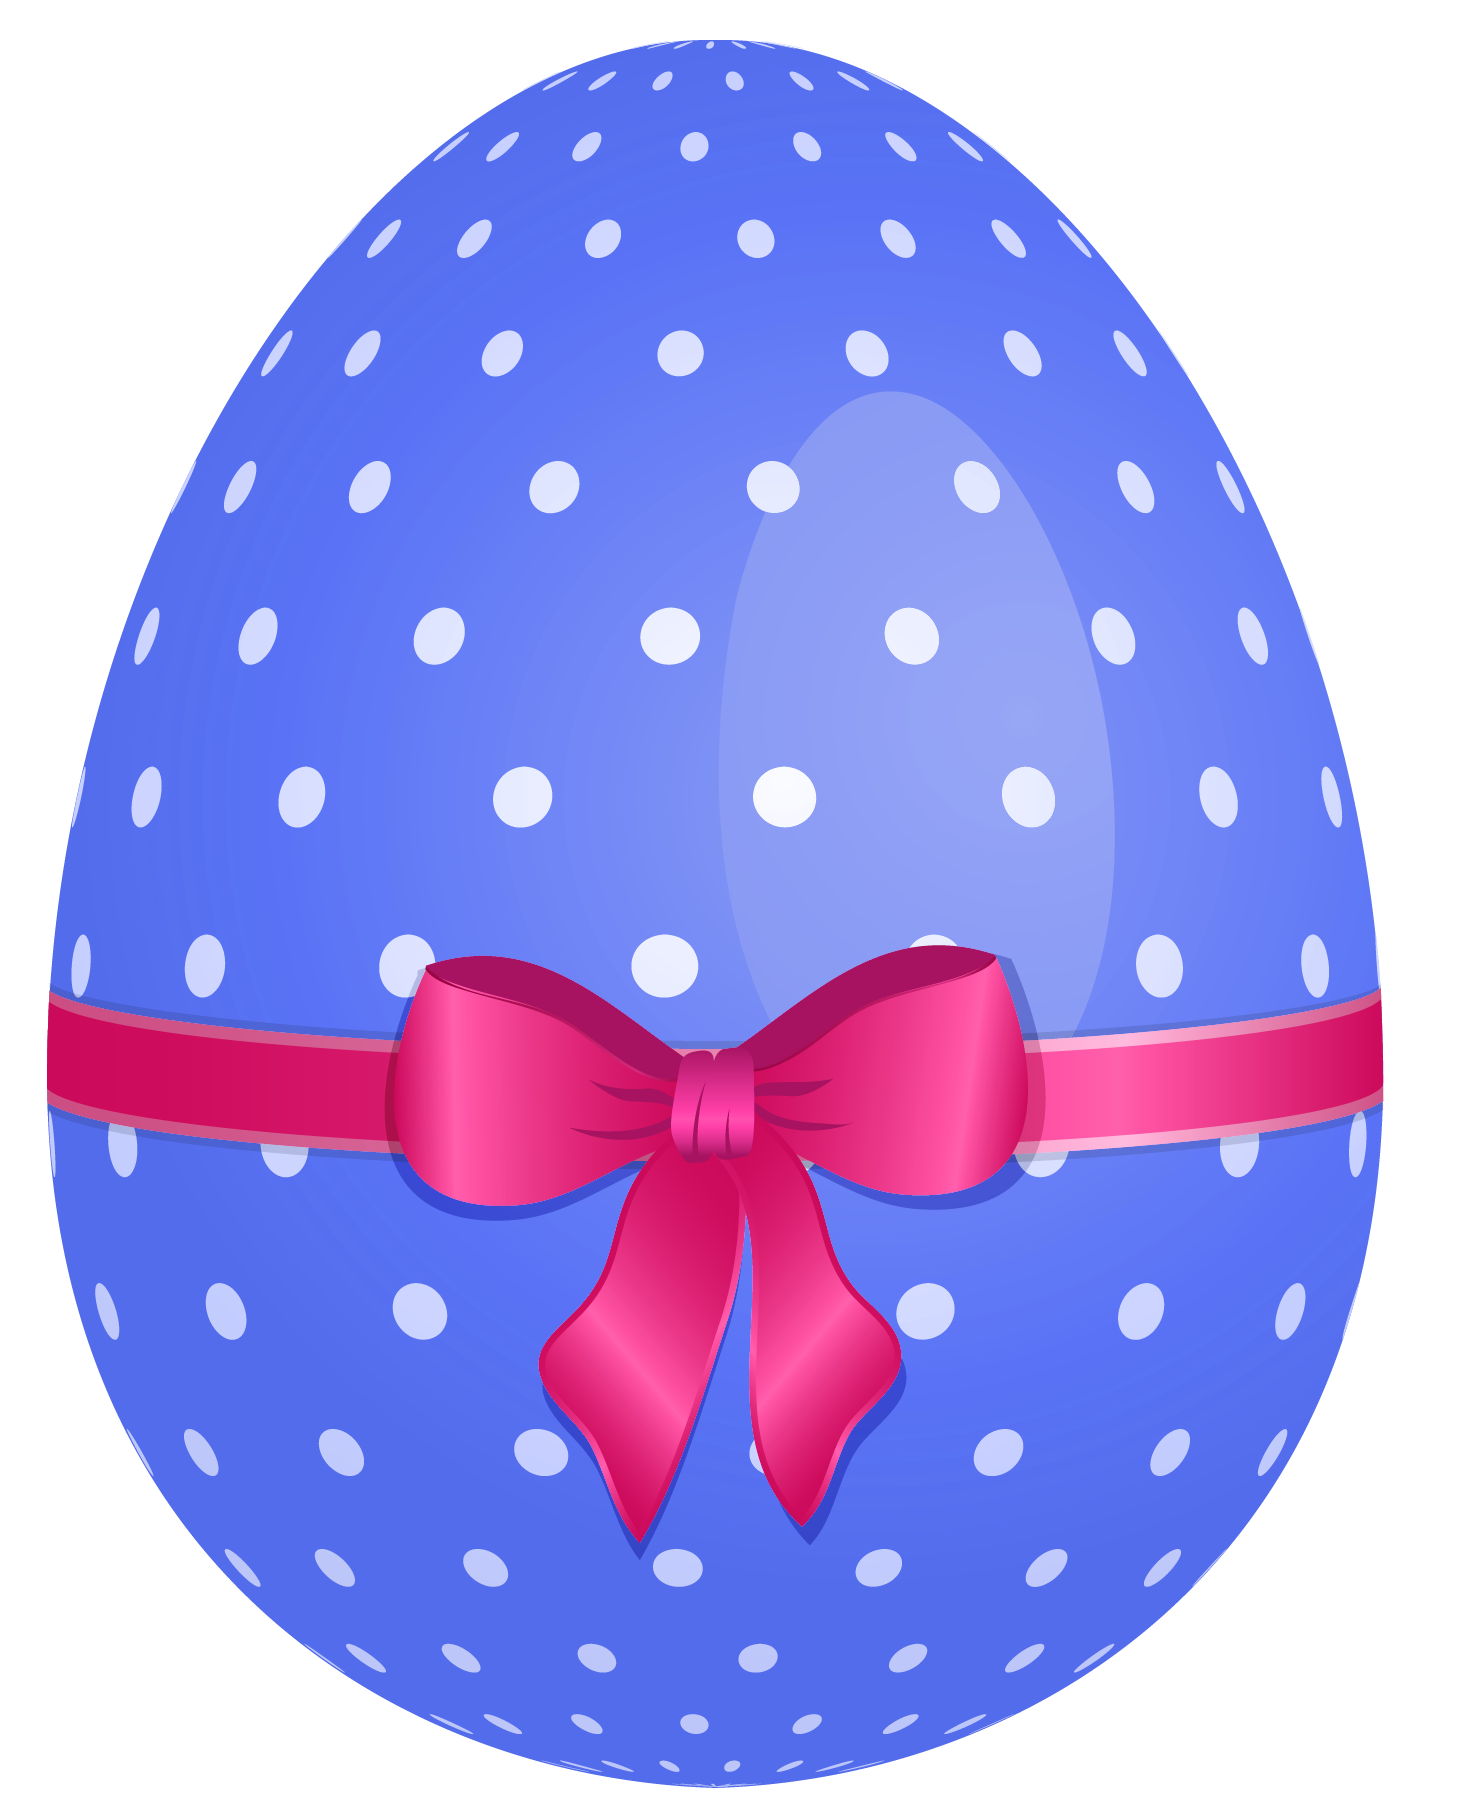 Easter Eggs PNG - 8517